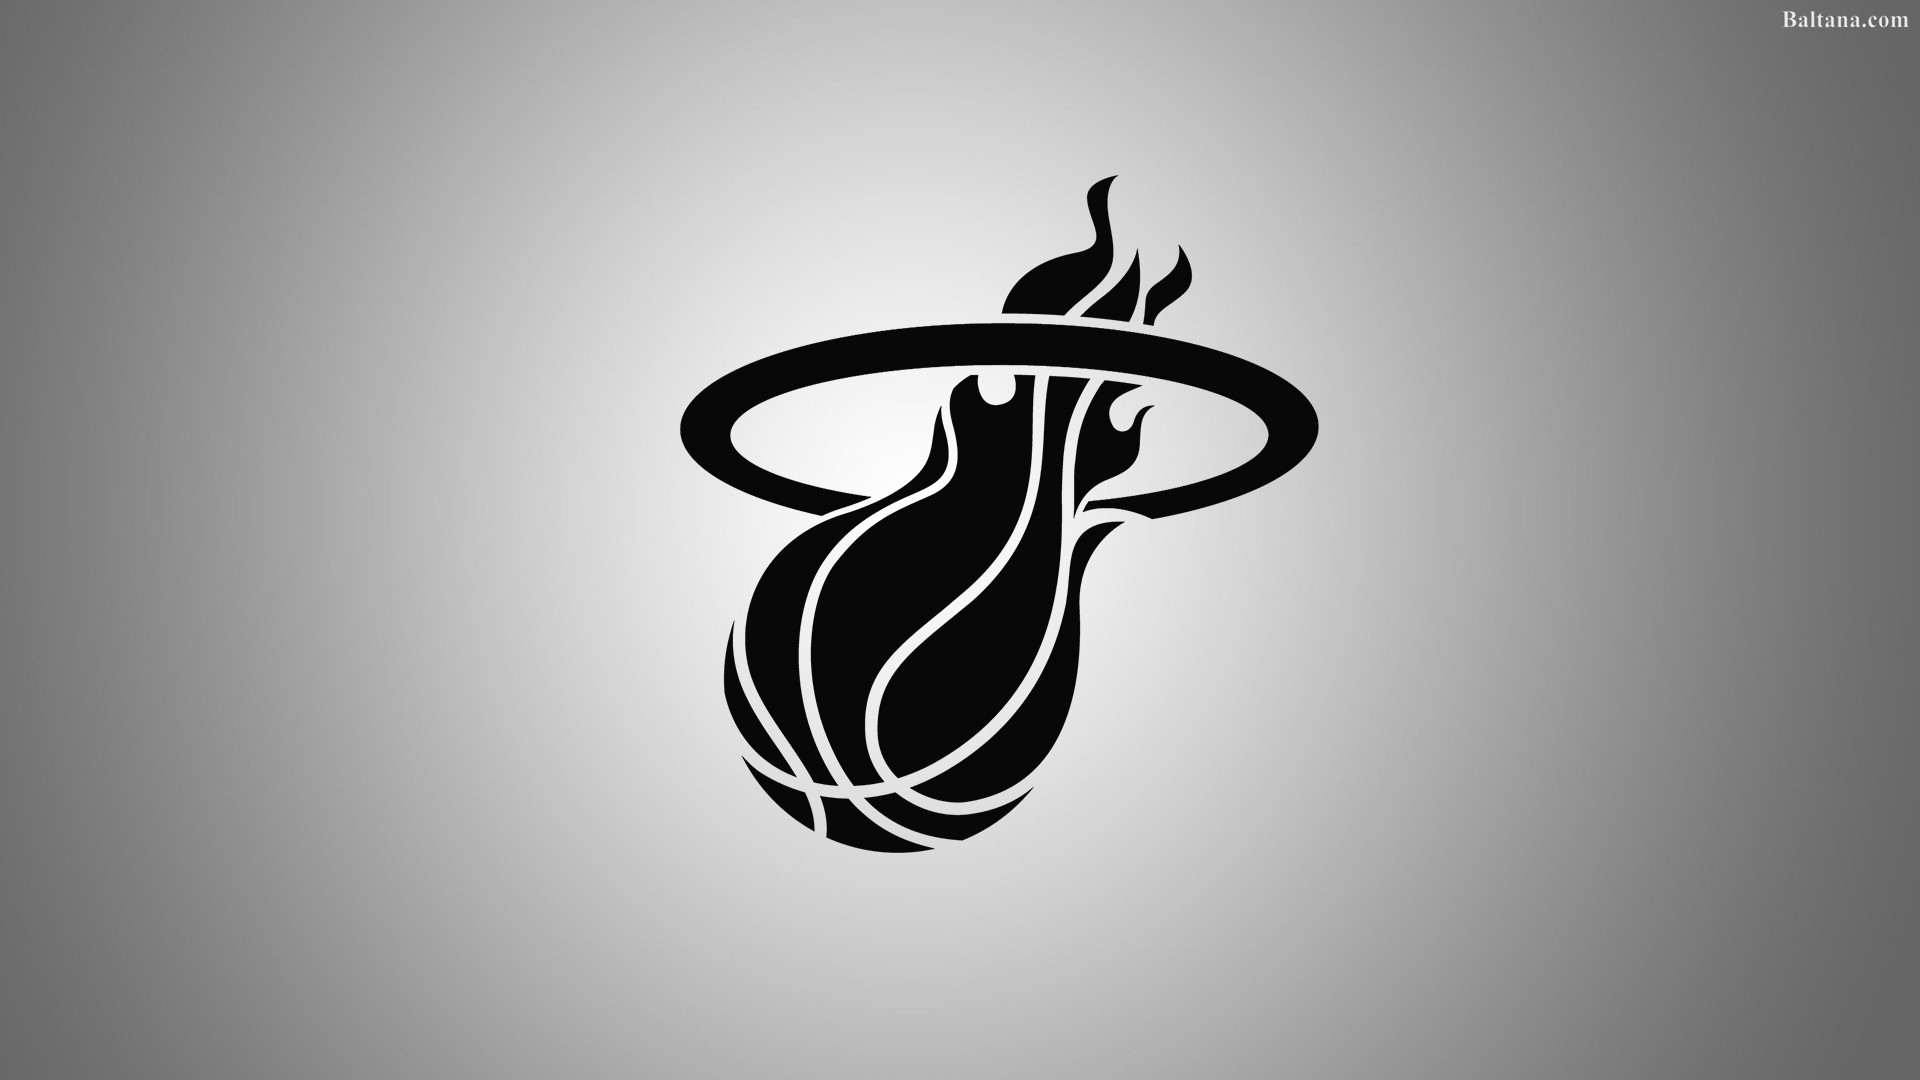 Download Miami Heat Wallpaper Hd Backgrounds Download Itl Cat